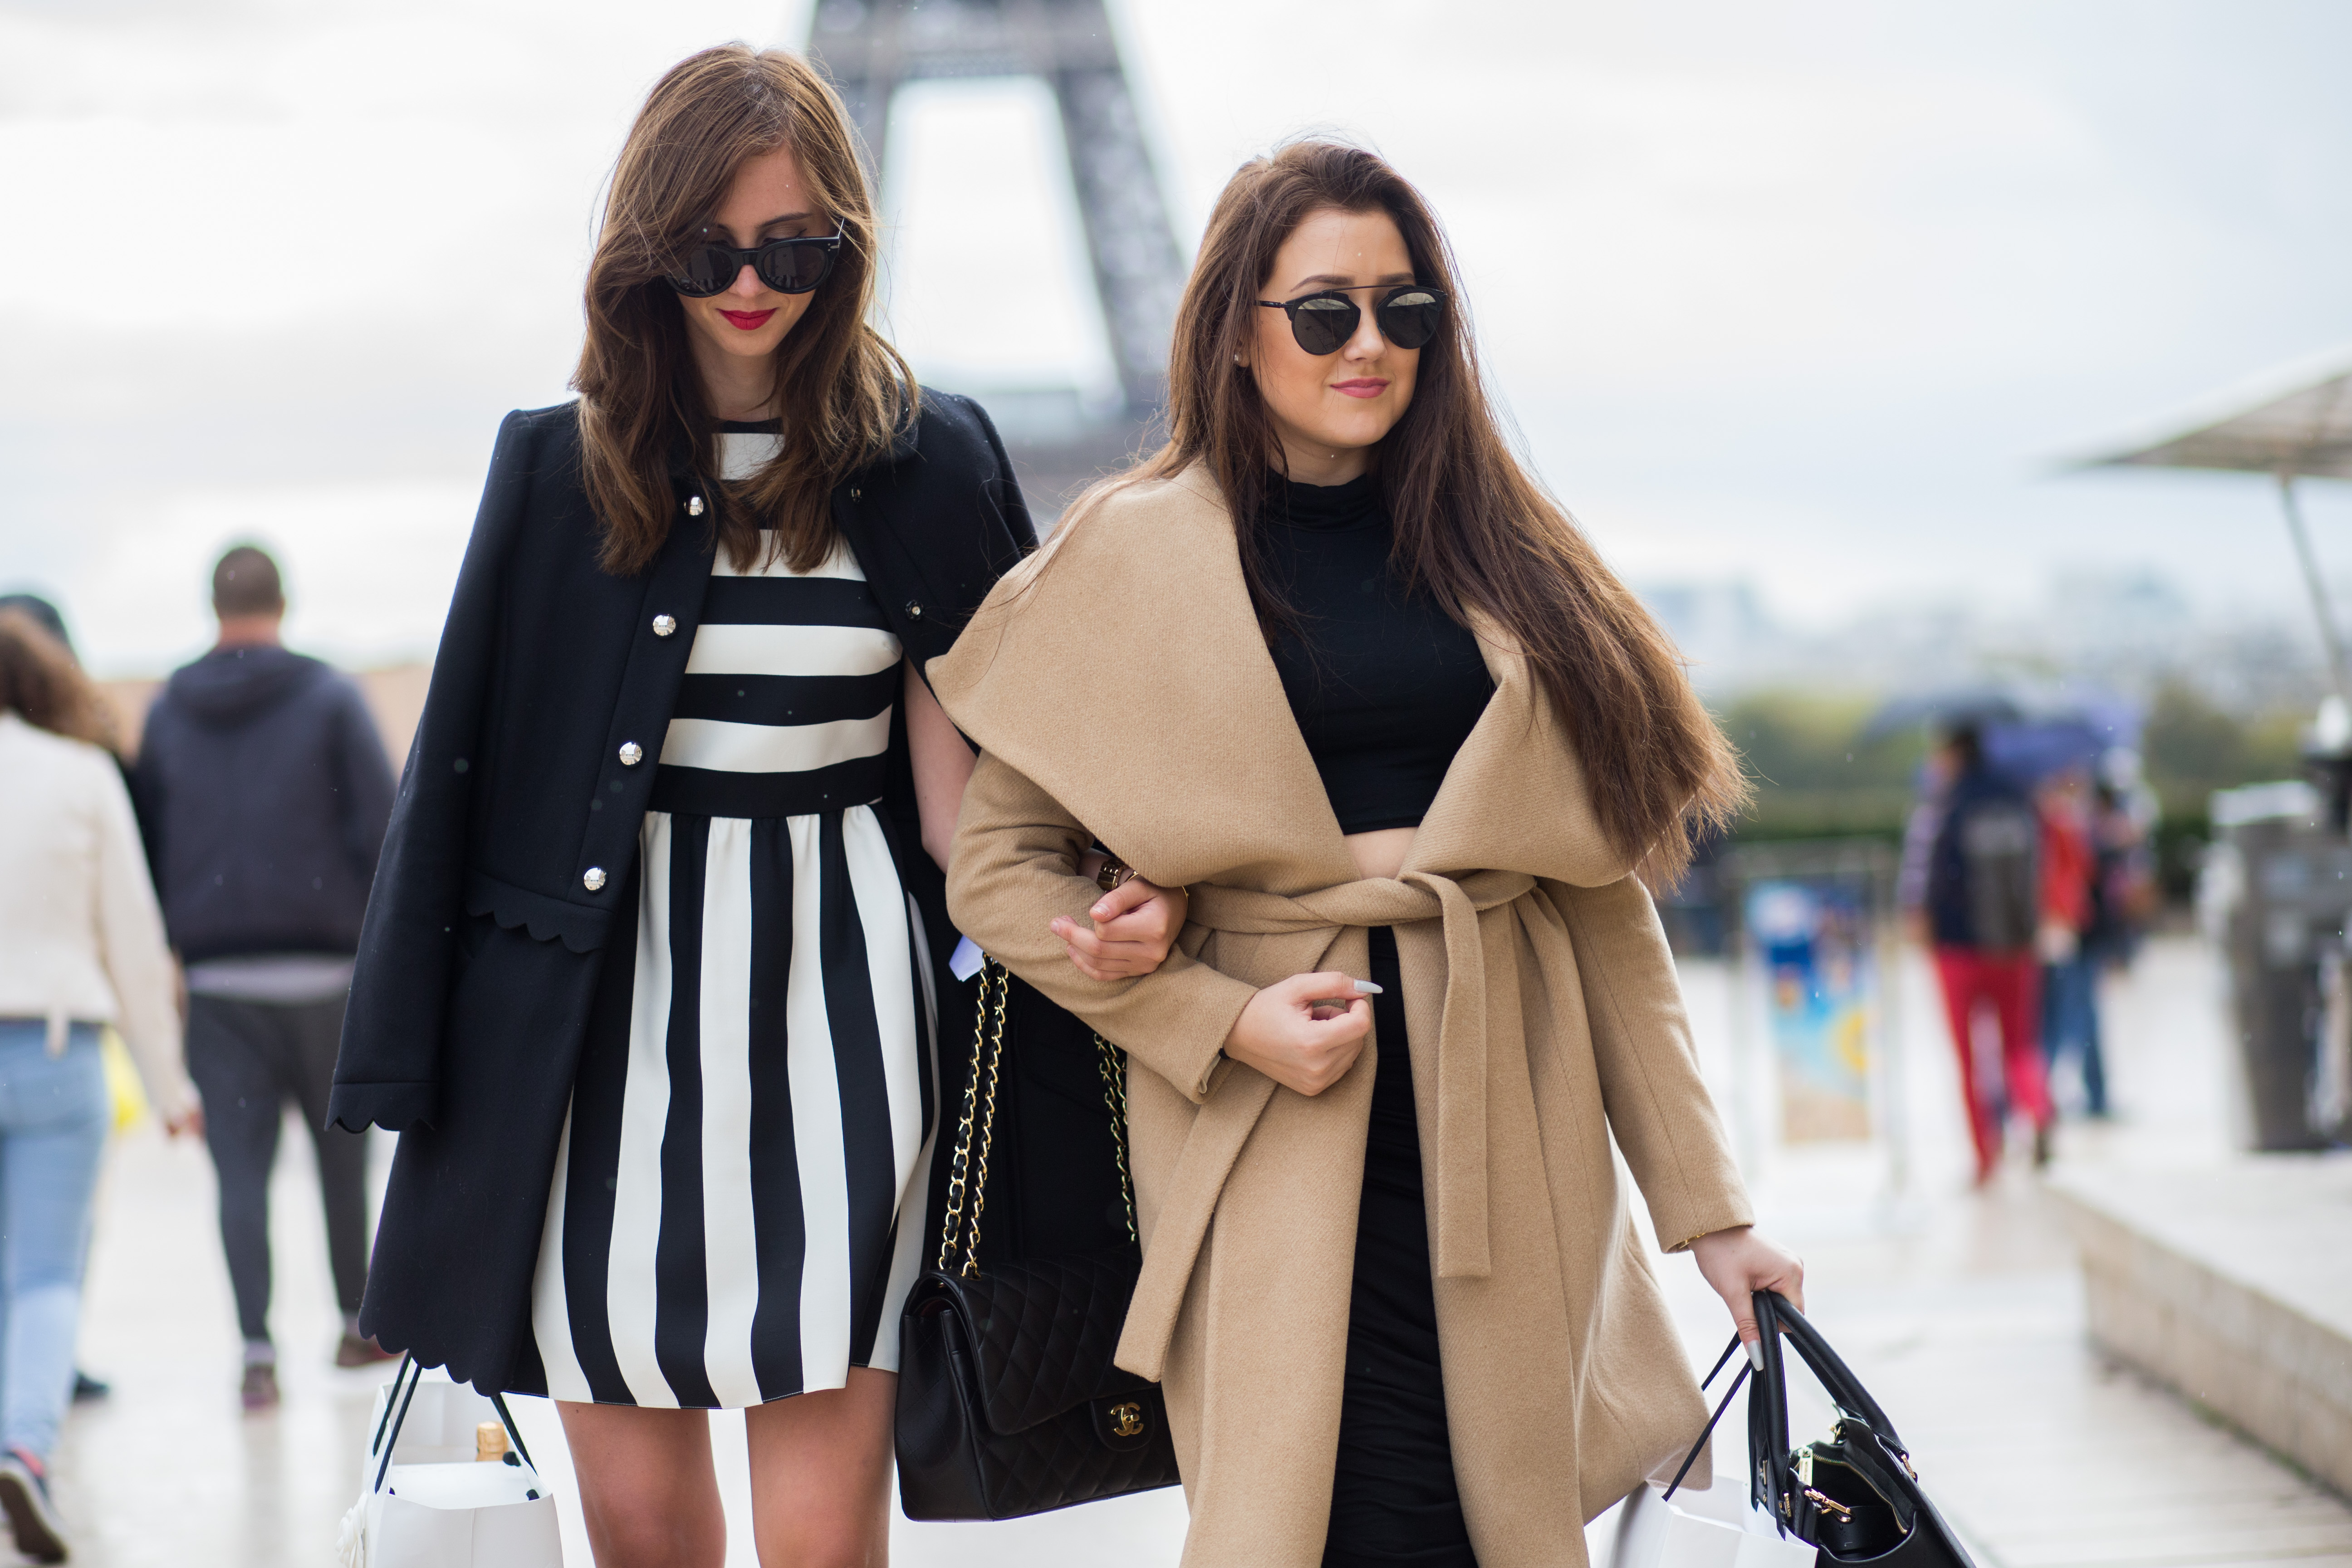 pfw_ss16_day8_00--99